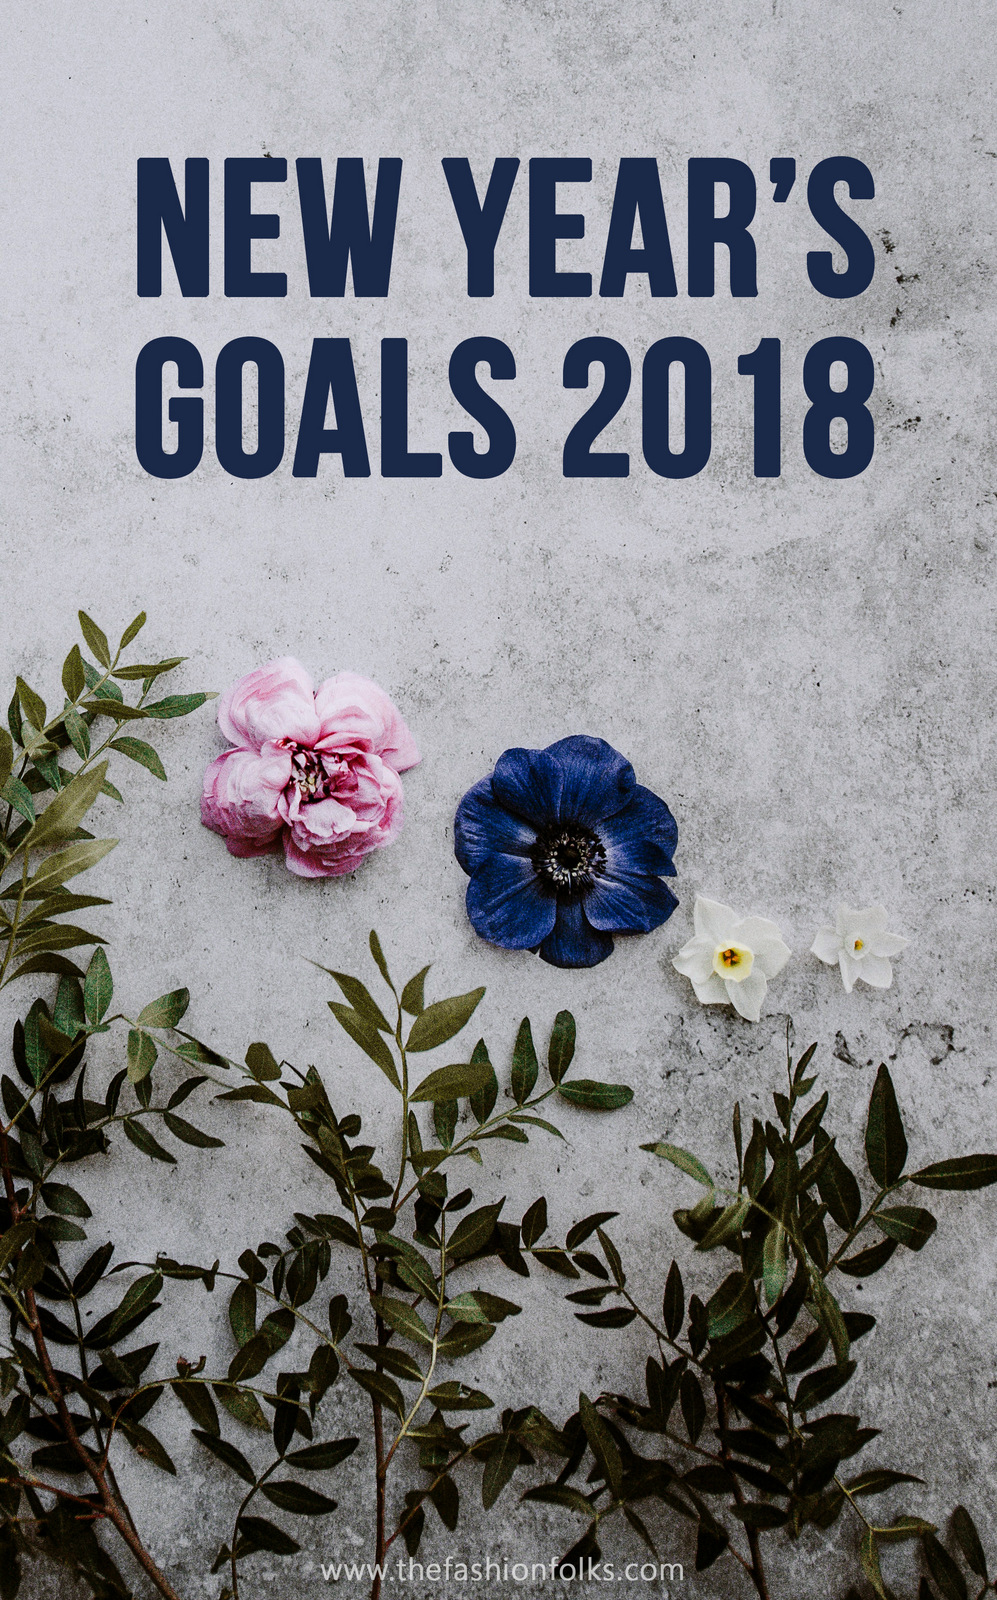 Reminder: New Year's Goals 2018